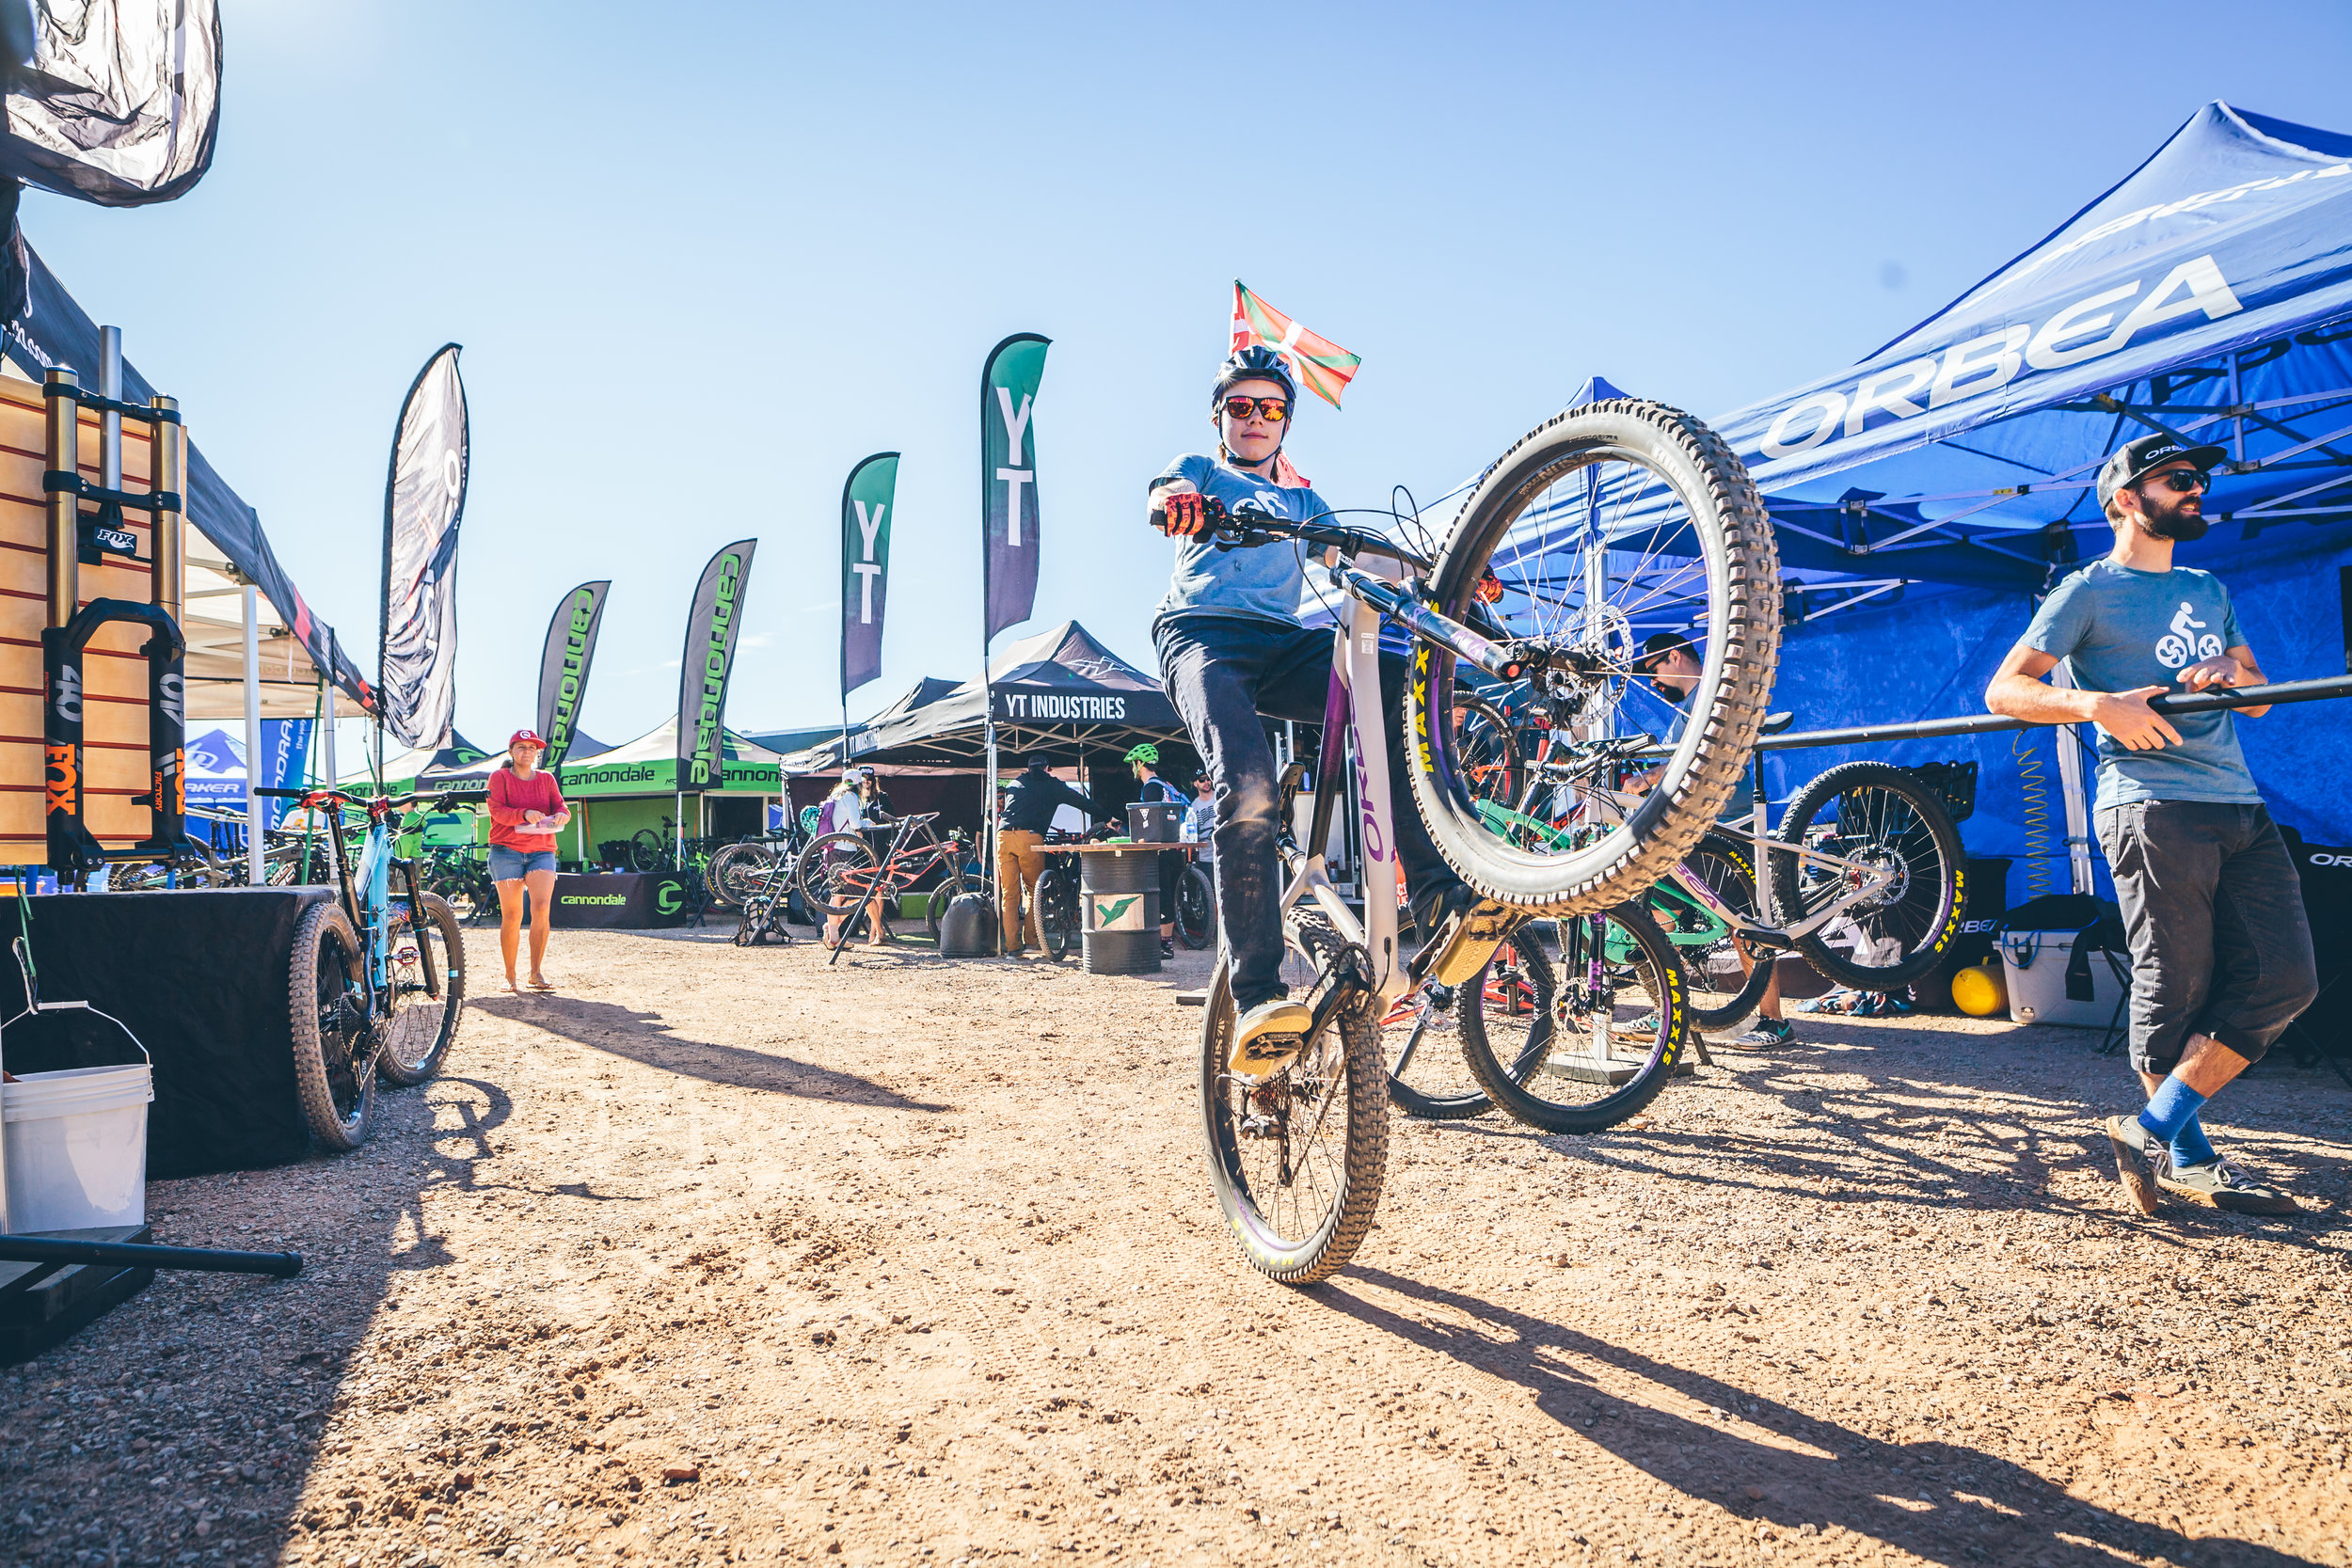 2017-10-07 OUTERBIKE (4 of 34).jpg